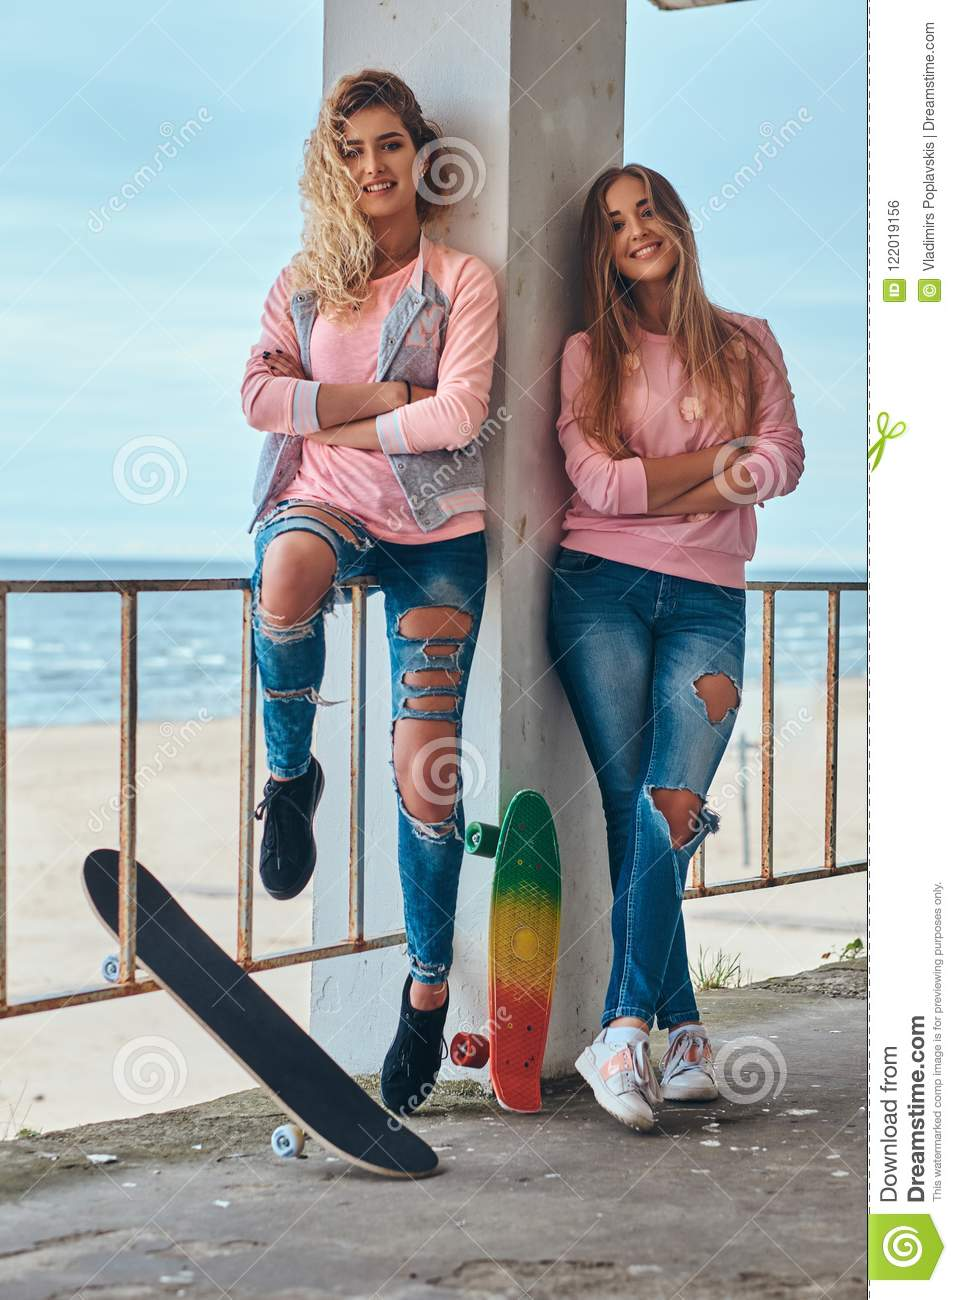 Two beautiful girls in trendy clothes posing with skateboards near a guardrail against a sea coast.